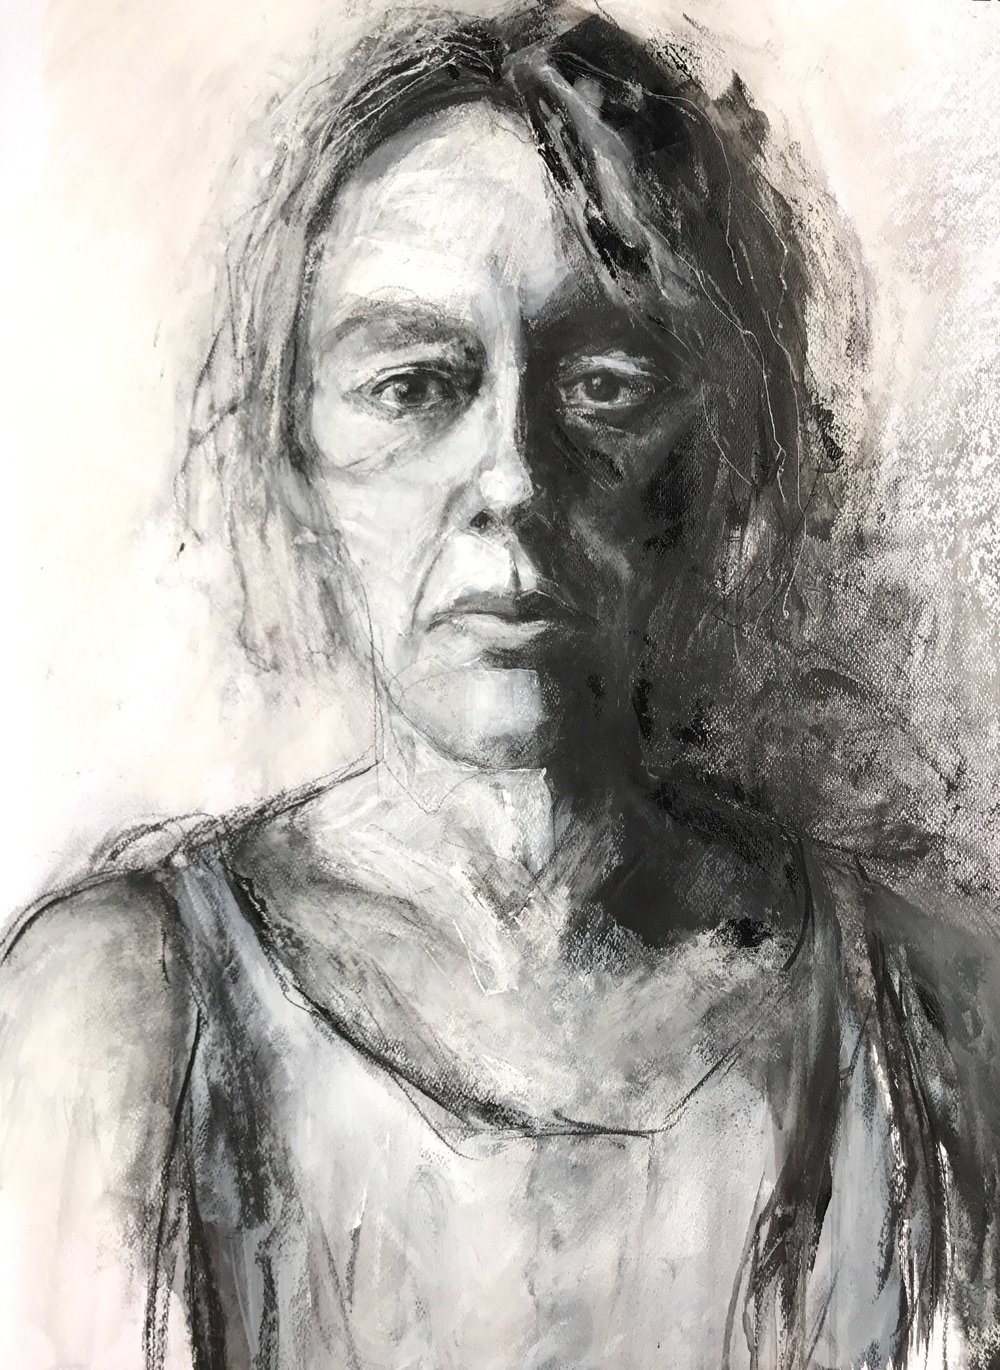 Self-portrait. Taking it further, charcoal, conte, ink and acrylic on watercolour paper